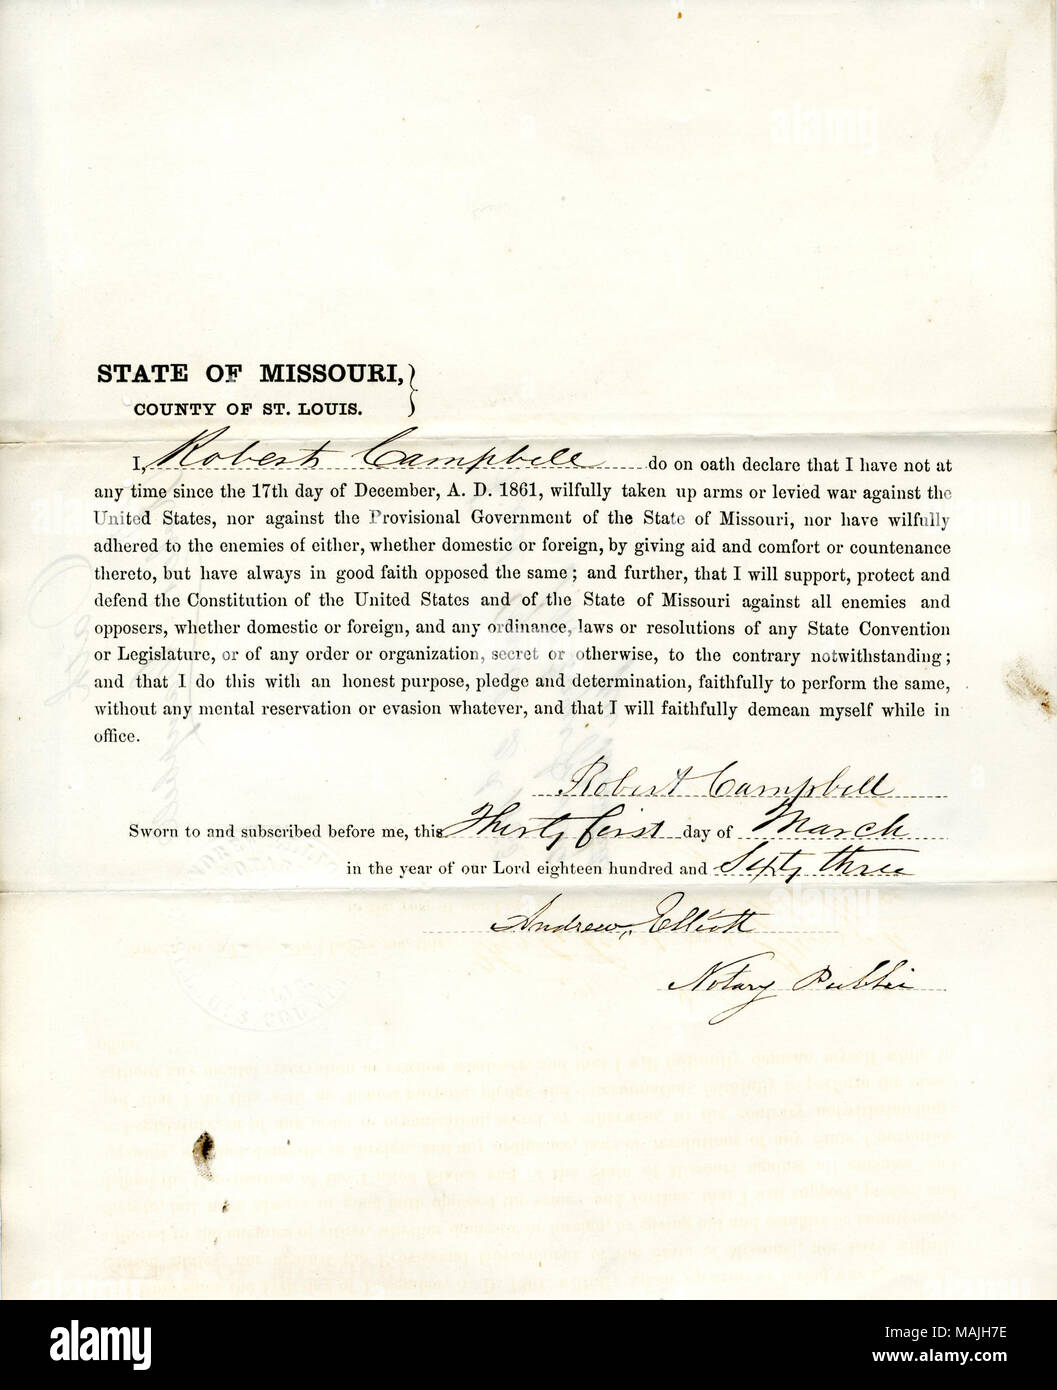 Swears oath of allegiance to the Government of the United States and the State of Missouri. Title: Loyalty oath of Robert Campbell of Missouri, County of St.Louis  . 2 April 1863. Campbell, R. - Stock Image